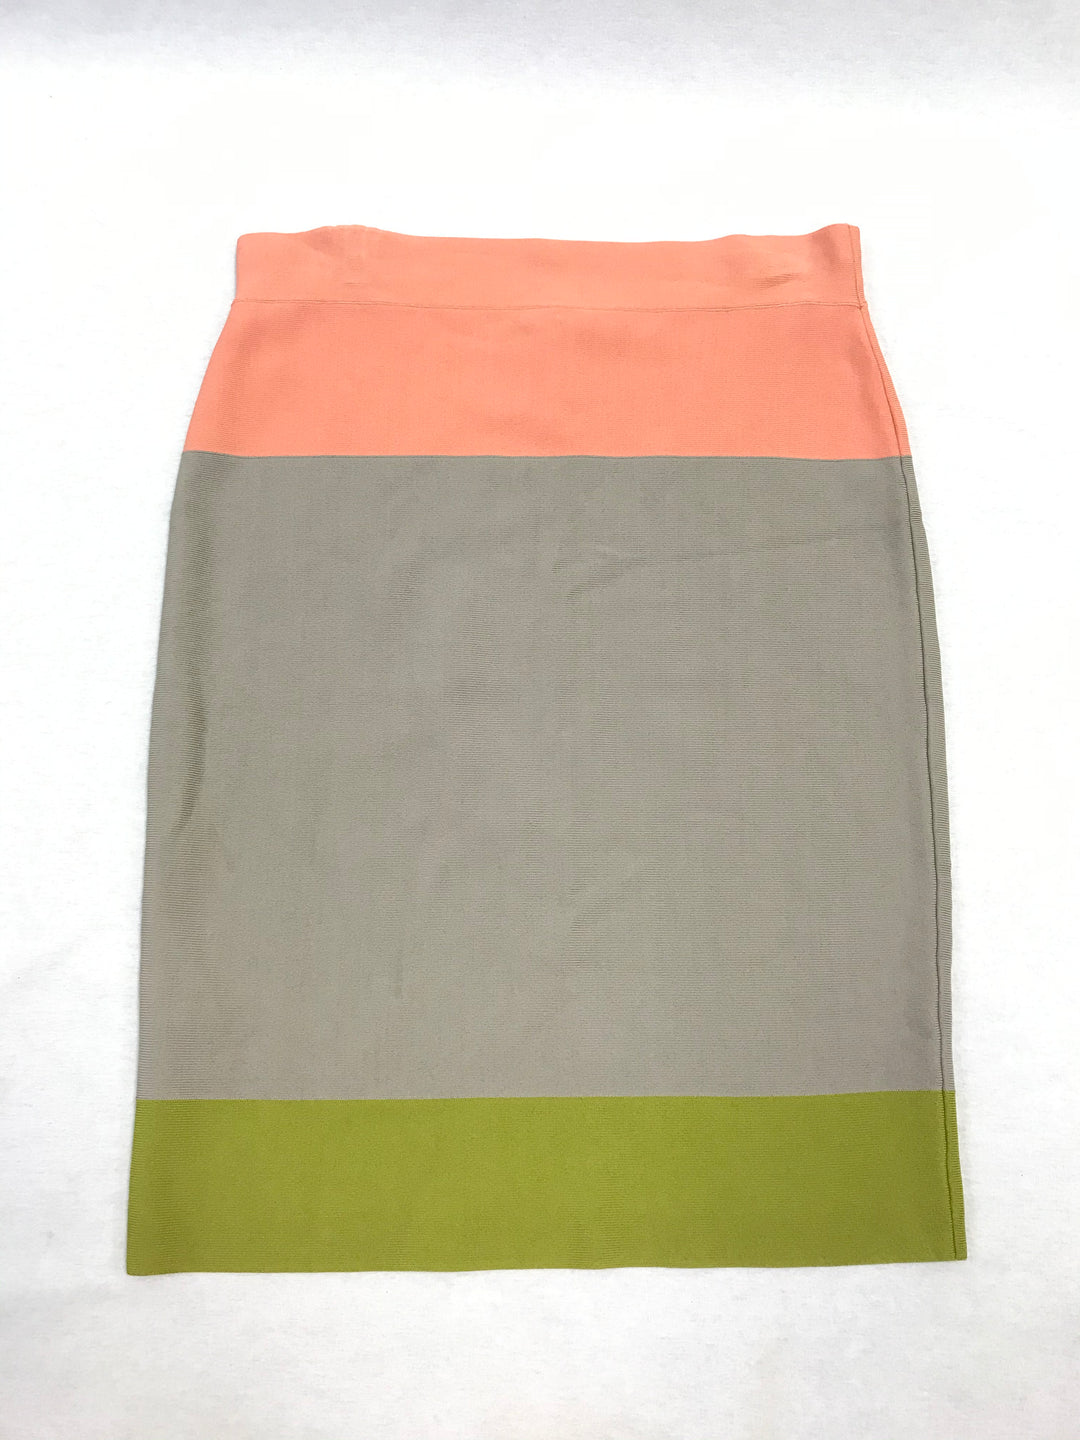 Primary Photo - BRAND: BCBGMAXAZRIA O <BR>STYLE: SKIRT <BR>COLOR: ORANGE <BR>SIZE: L <BR>SKU: 223-22318-106036